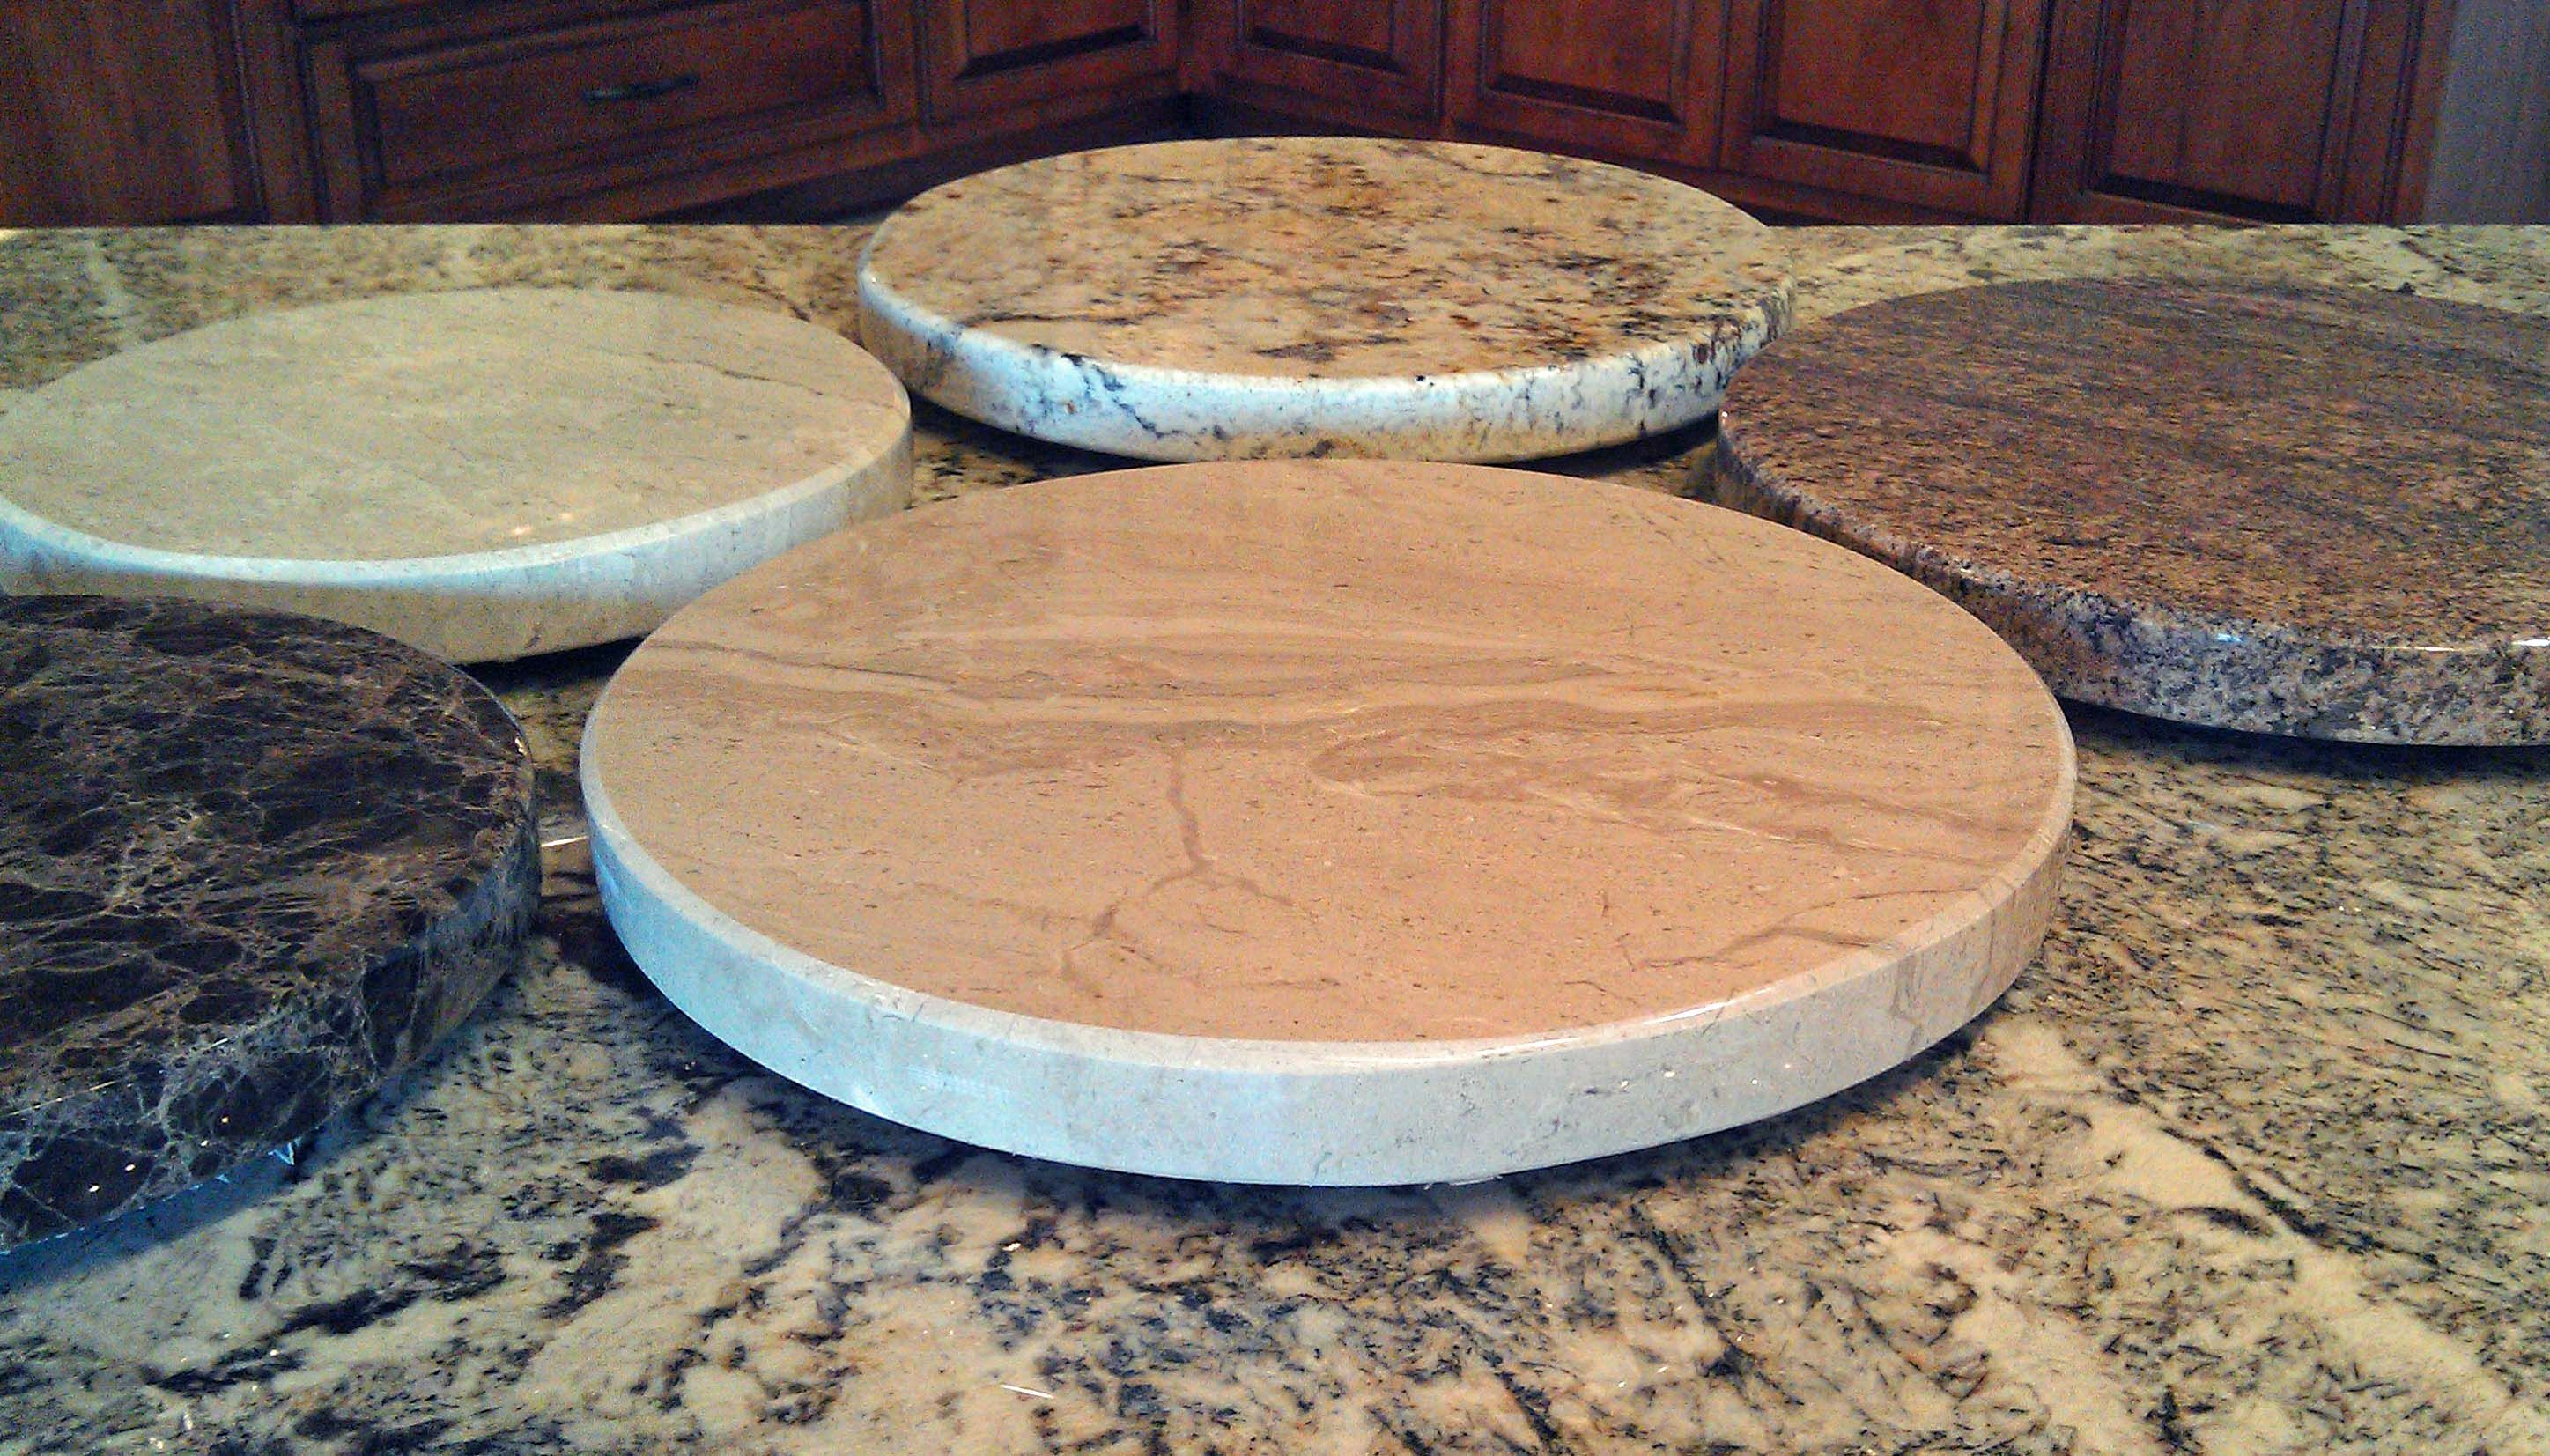 we have begun making lazy susans or turntables as some call them we can make them out of any granite marble or quartz